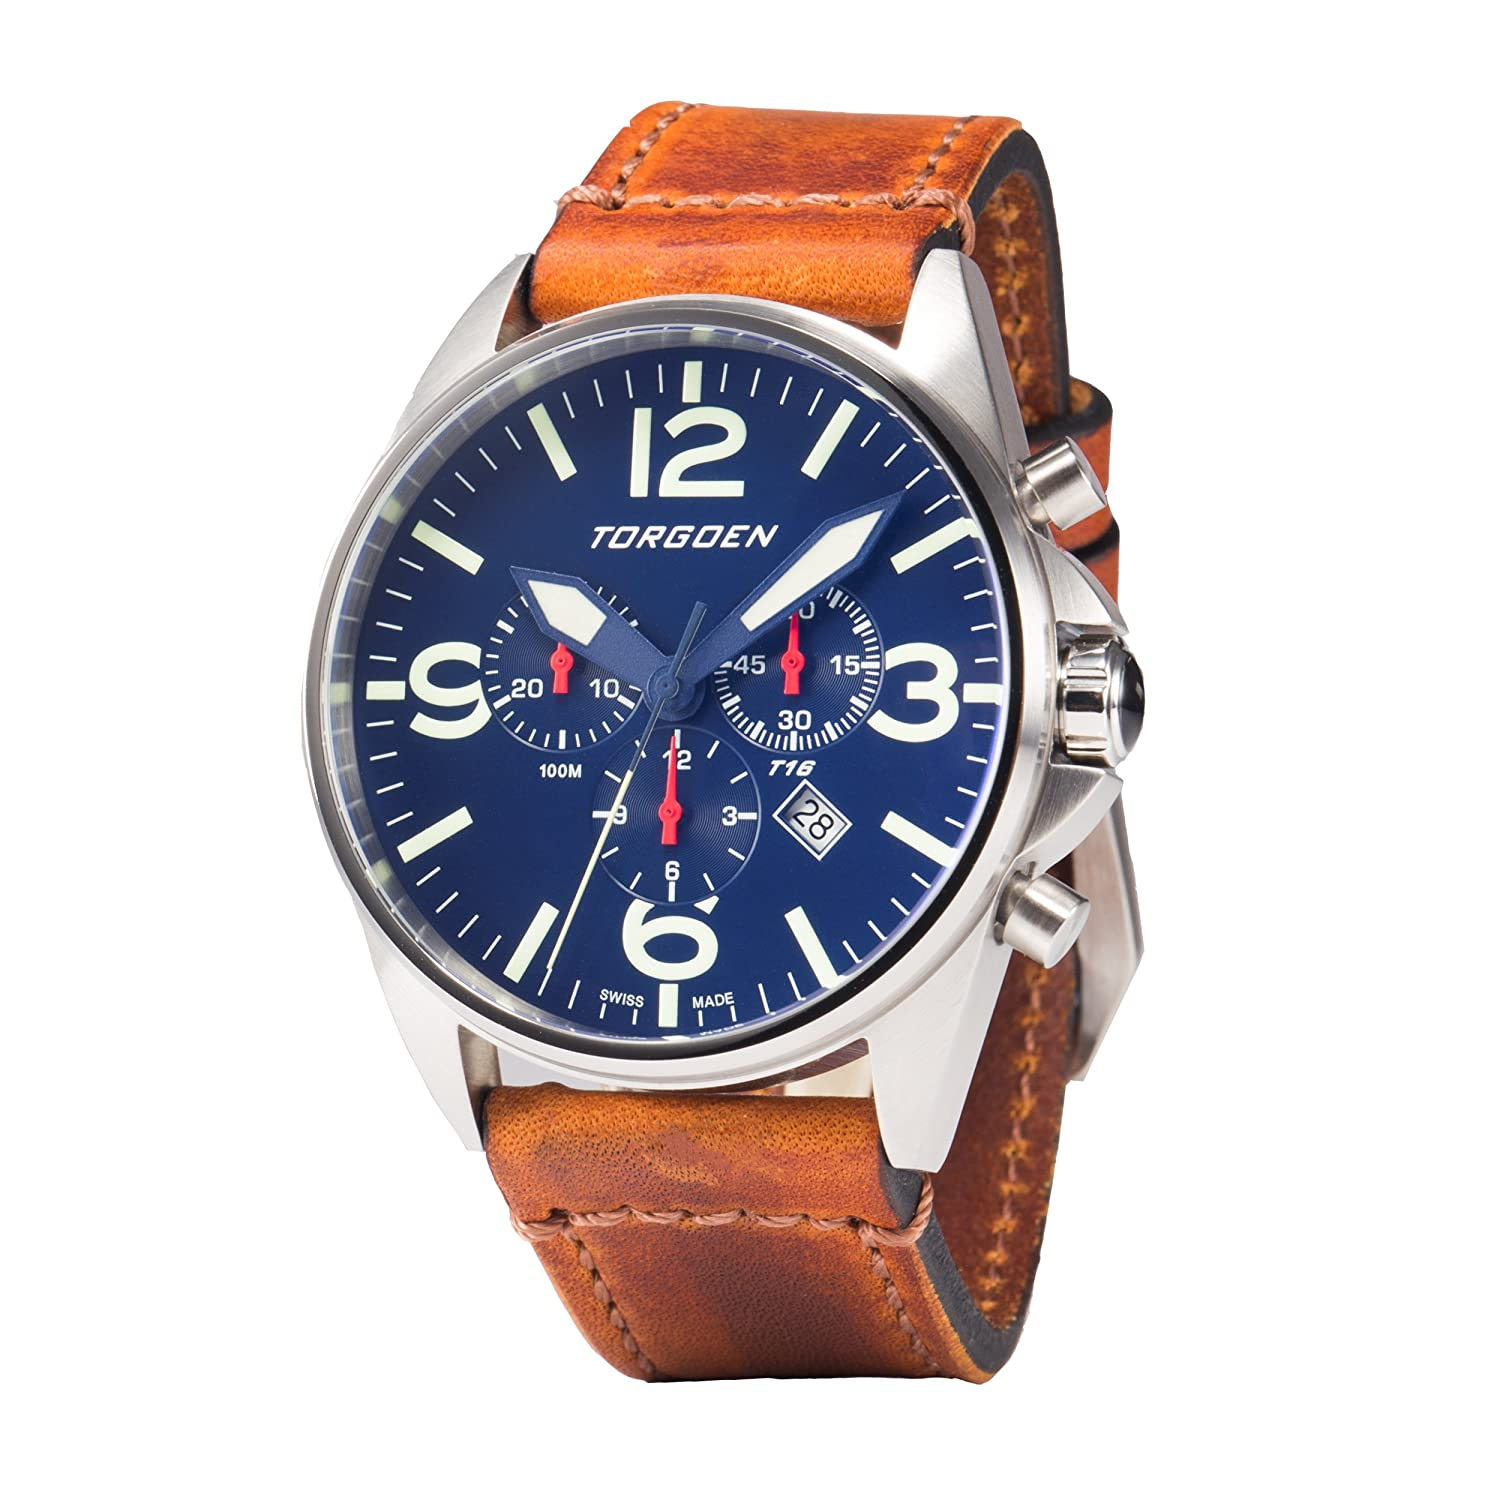 Amazon.com: Torgoen T16 Blue Swiss Chronograph Pilot Watch | 44mm - Vintage Leather Strap …: Watches